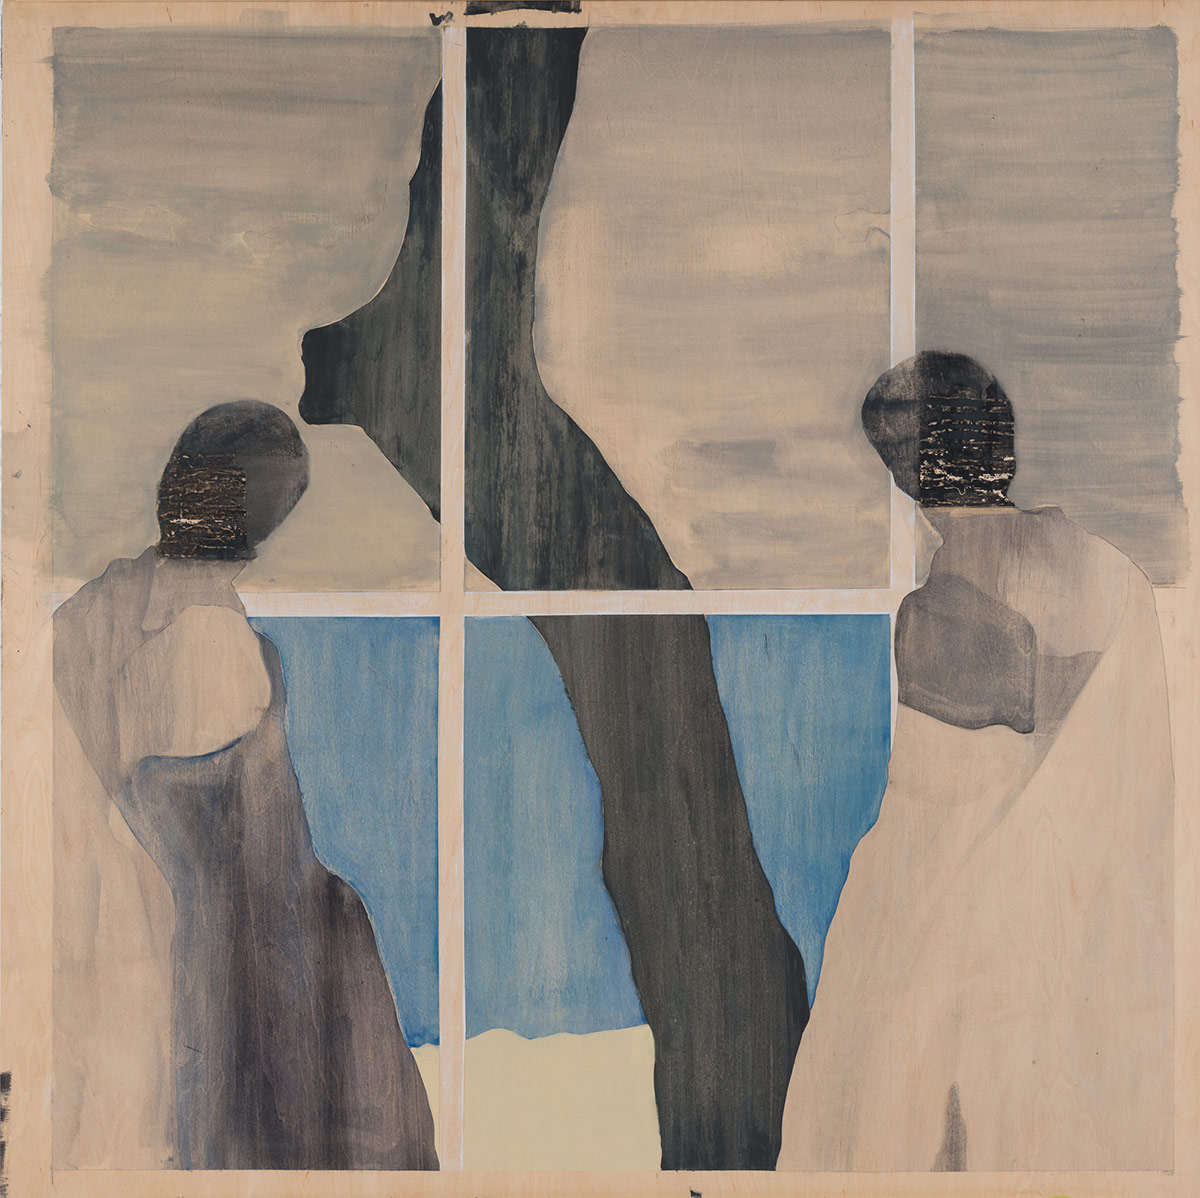 """Women by a window looking out,  2104. Acrylic, acrylic polymer and graphite on wood panel. 48""""x48"""""""